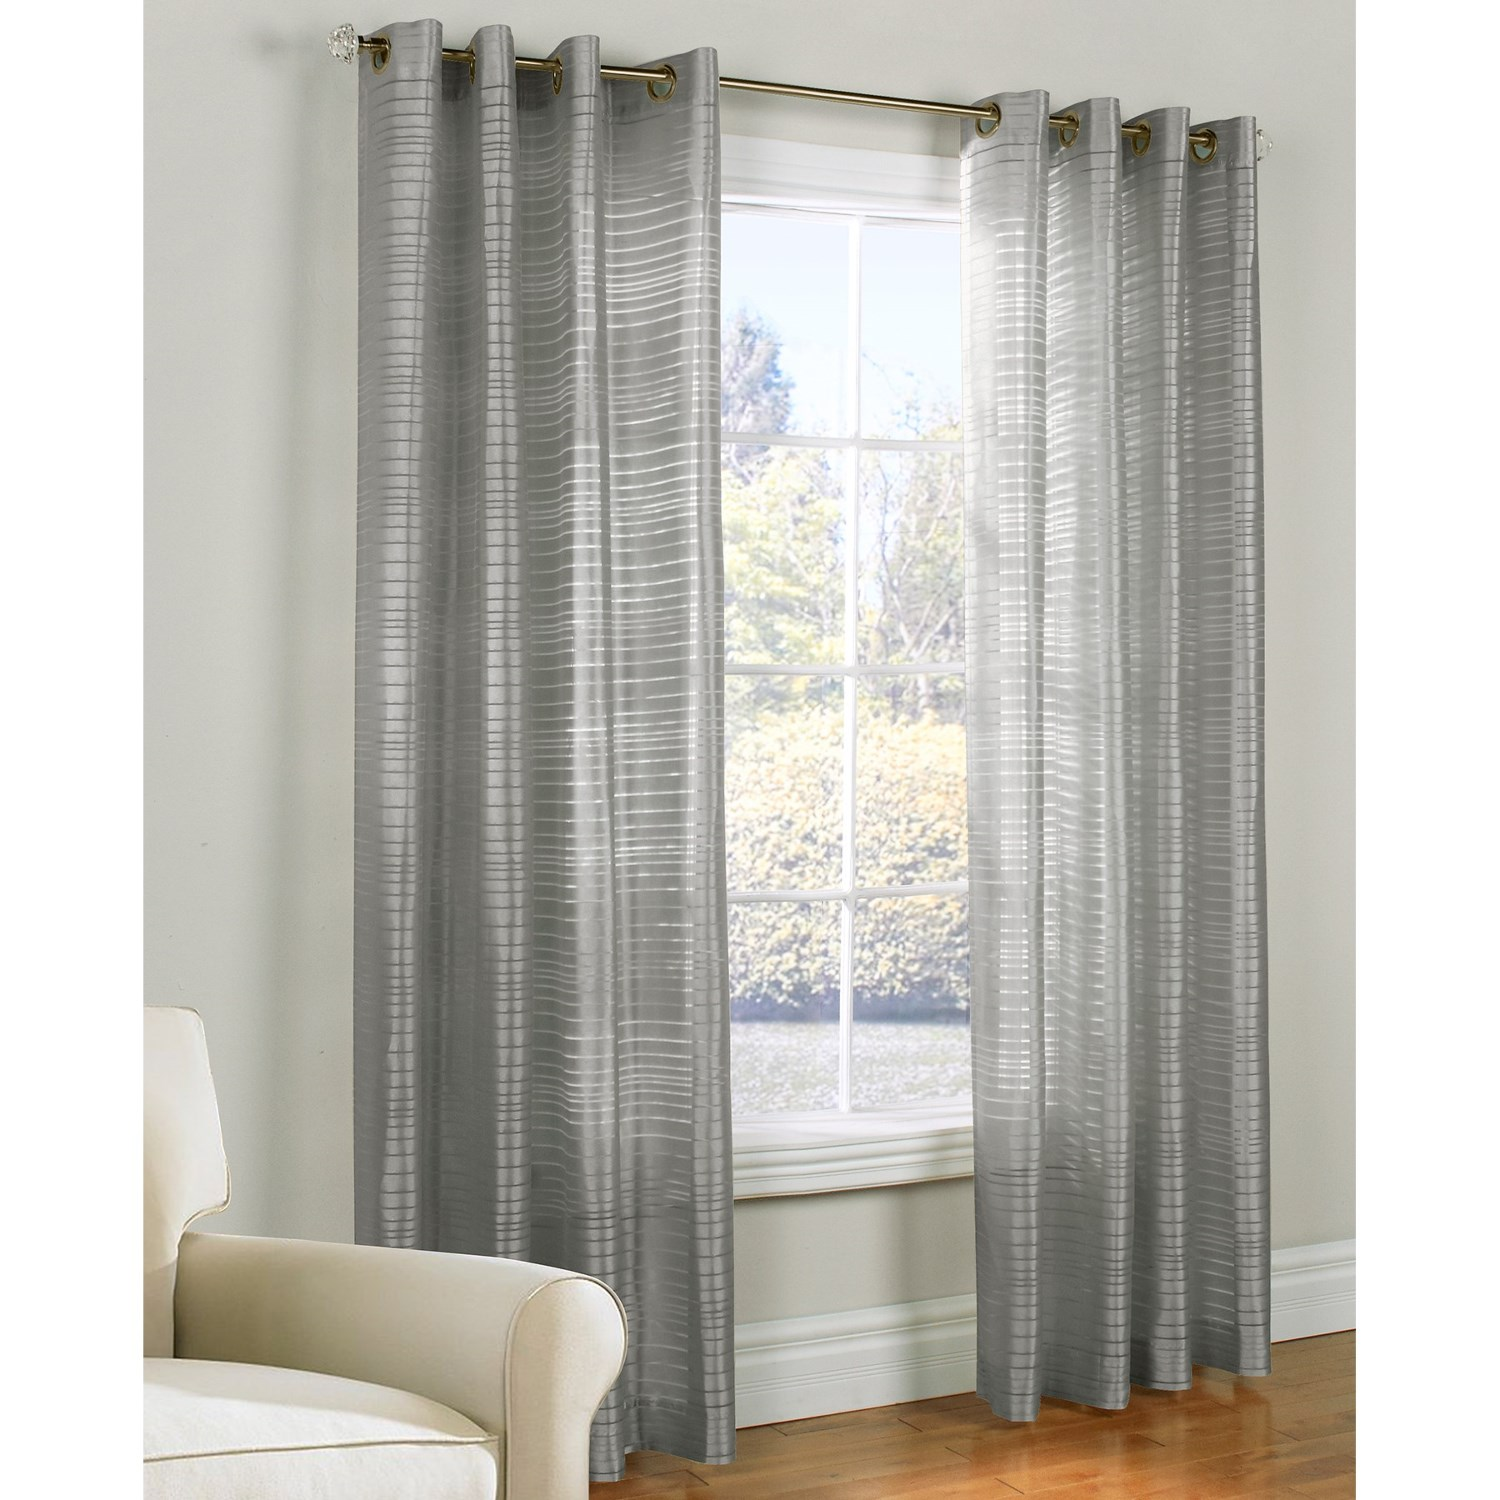 ... Slate Blue Sheer Curtains Habitat Horizontal Stripe Burnout Semi Sheer  Curtains 100x84 Grommet Top Save 36 ...